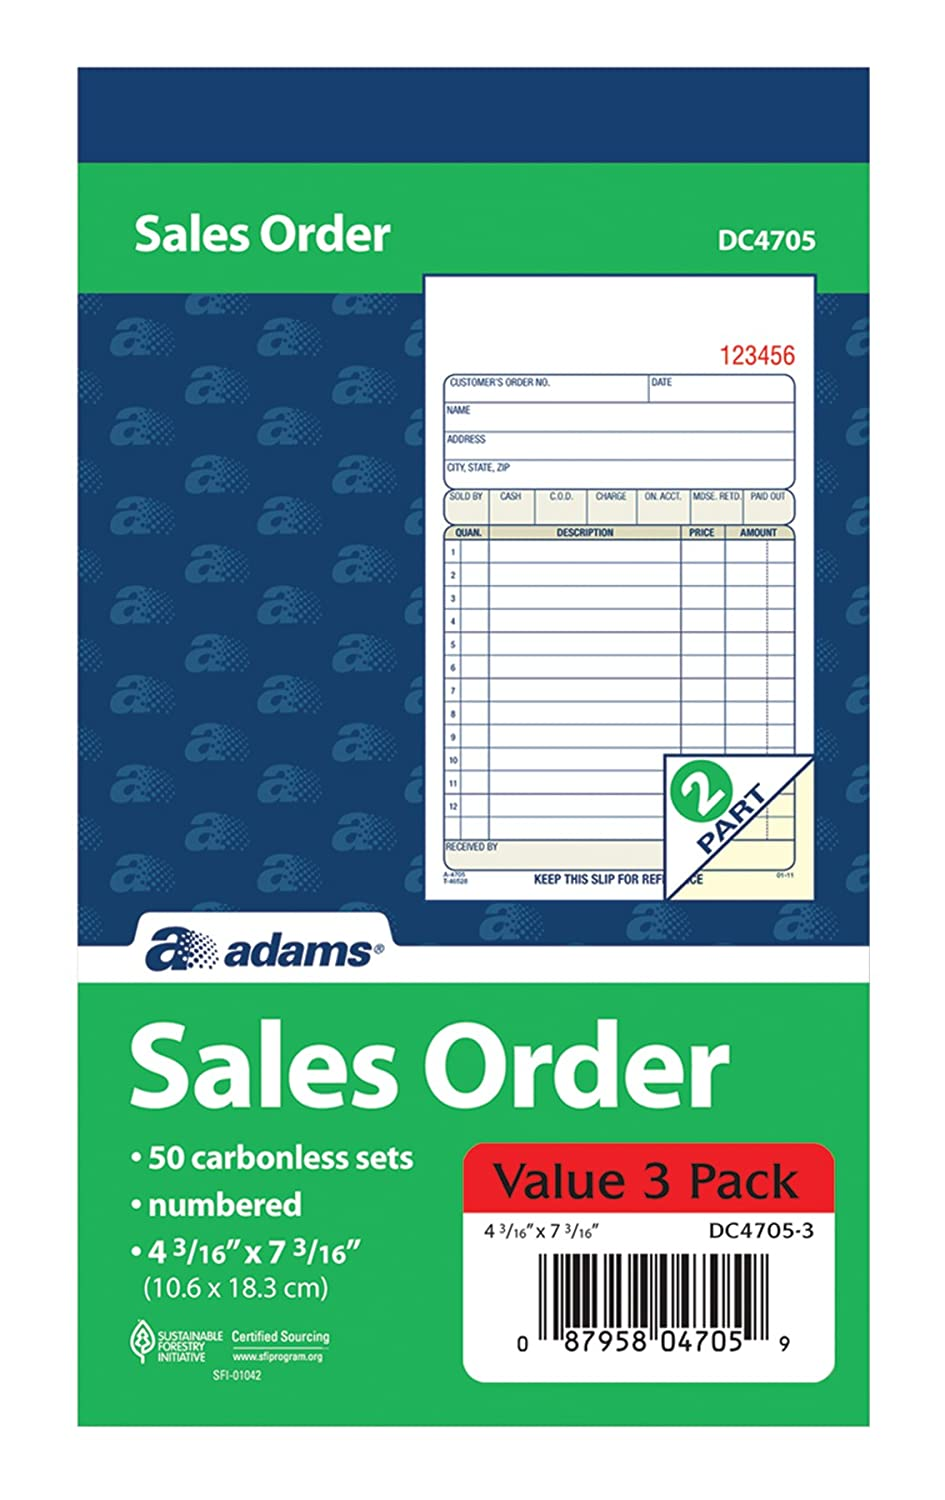 Adams Sales Order Books, 2-Part, Carbonless, White/Canary, 4-3/16 x 7-3/16 Inches, 50 Sets per Book, 3 Books (DC4705-3) TOPS BUSINESS FORMS Inc